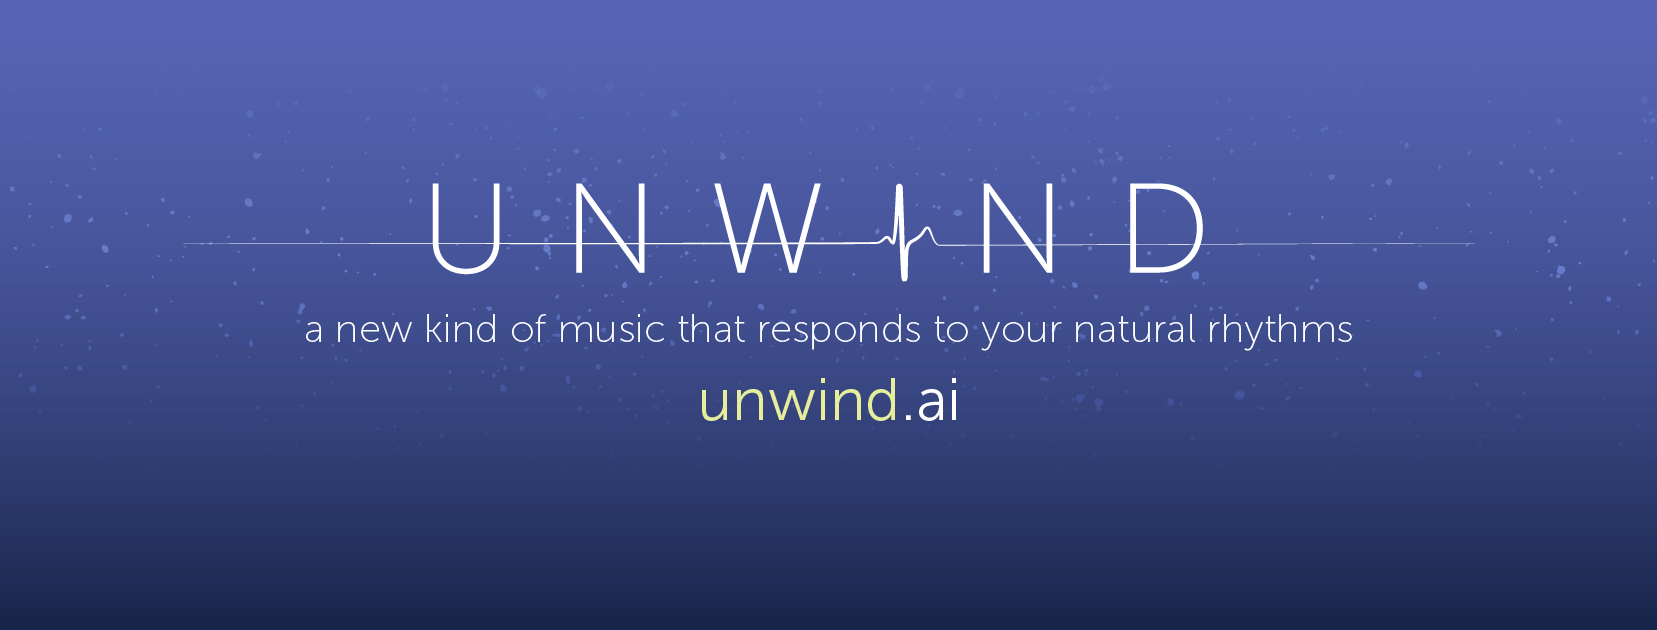 Unwind.ai Personalized Music Designed to Help You Relax Before Sleep